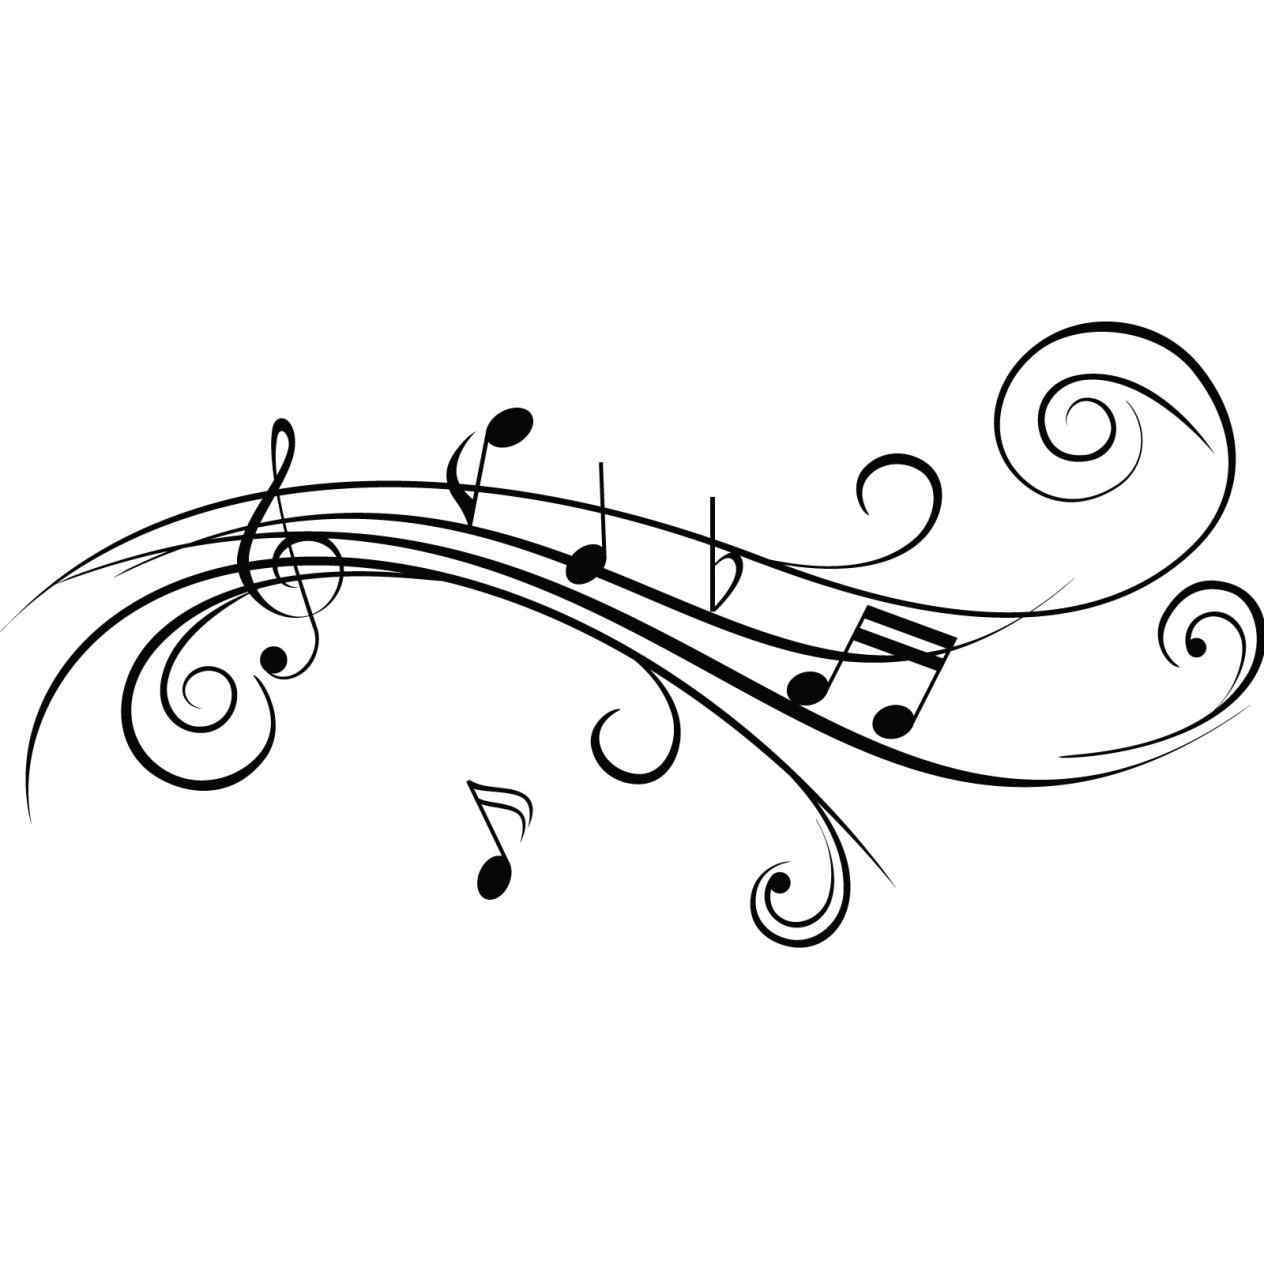 1264x1264 Note Cool Music Notes Drawings Drawing Free Download Clip Art